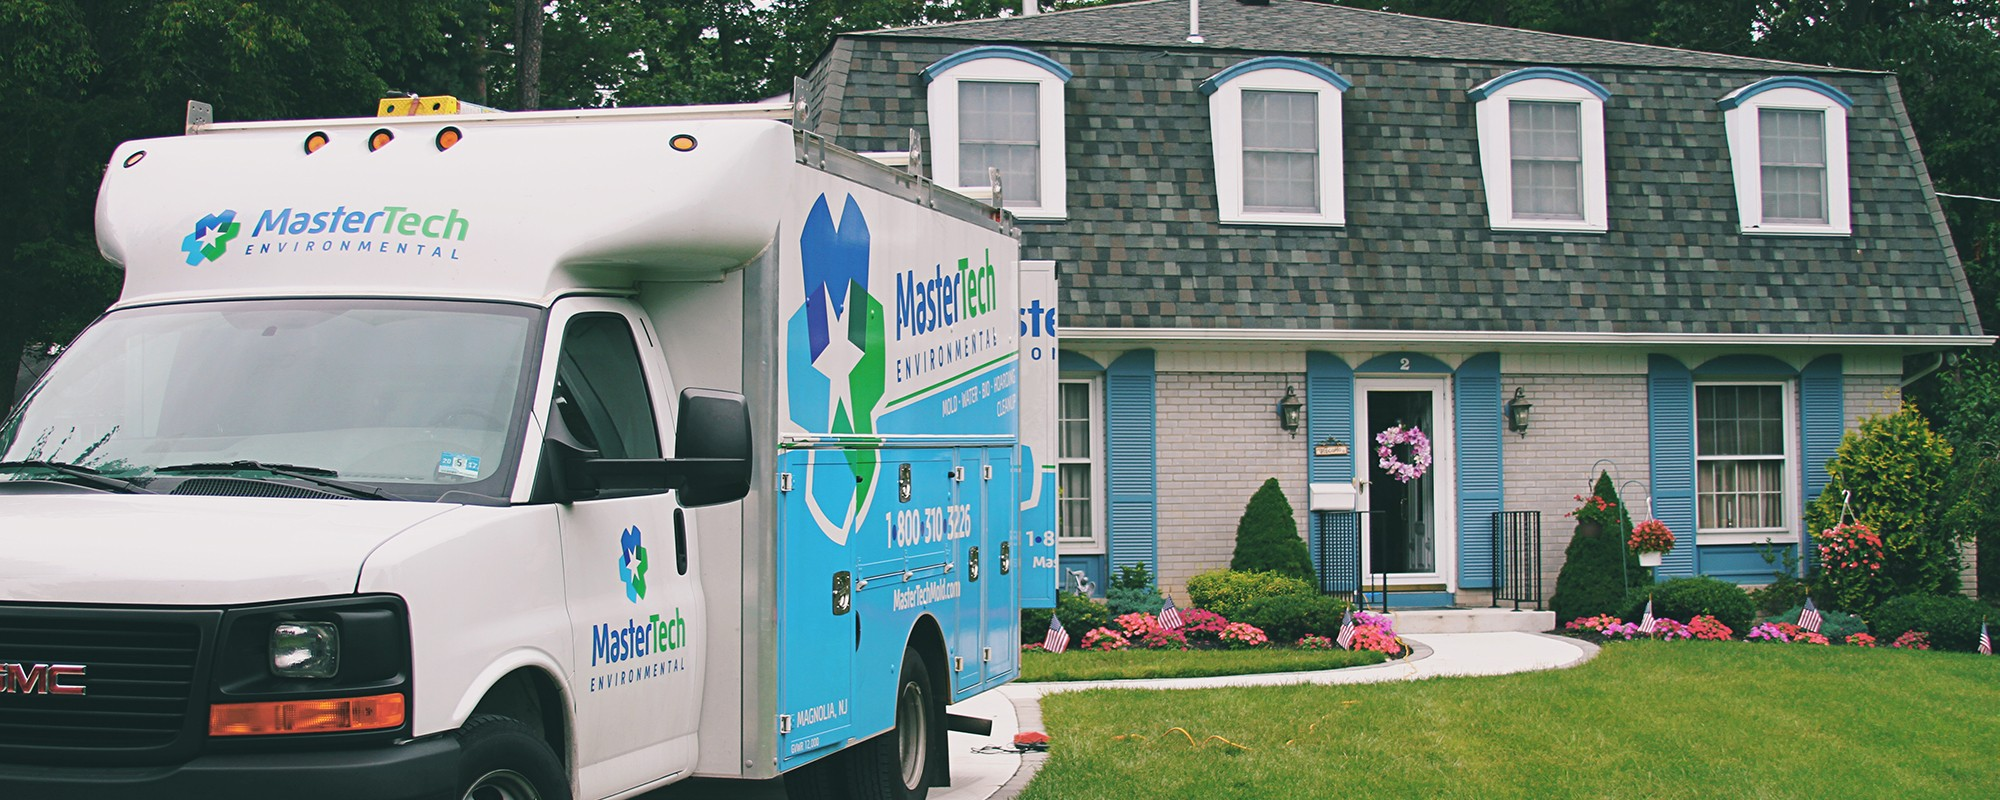 leaky-roof-causes-indoor-mold-growth-nj